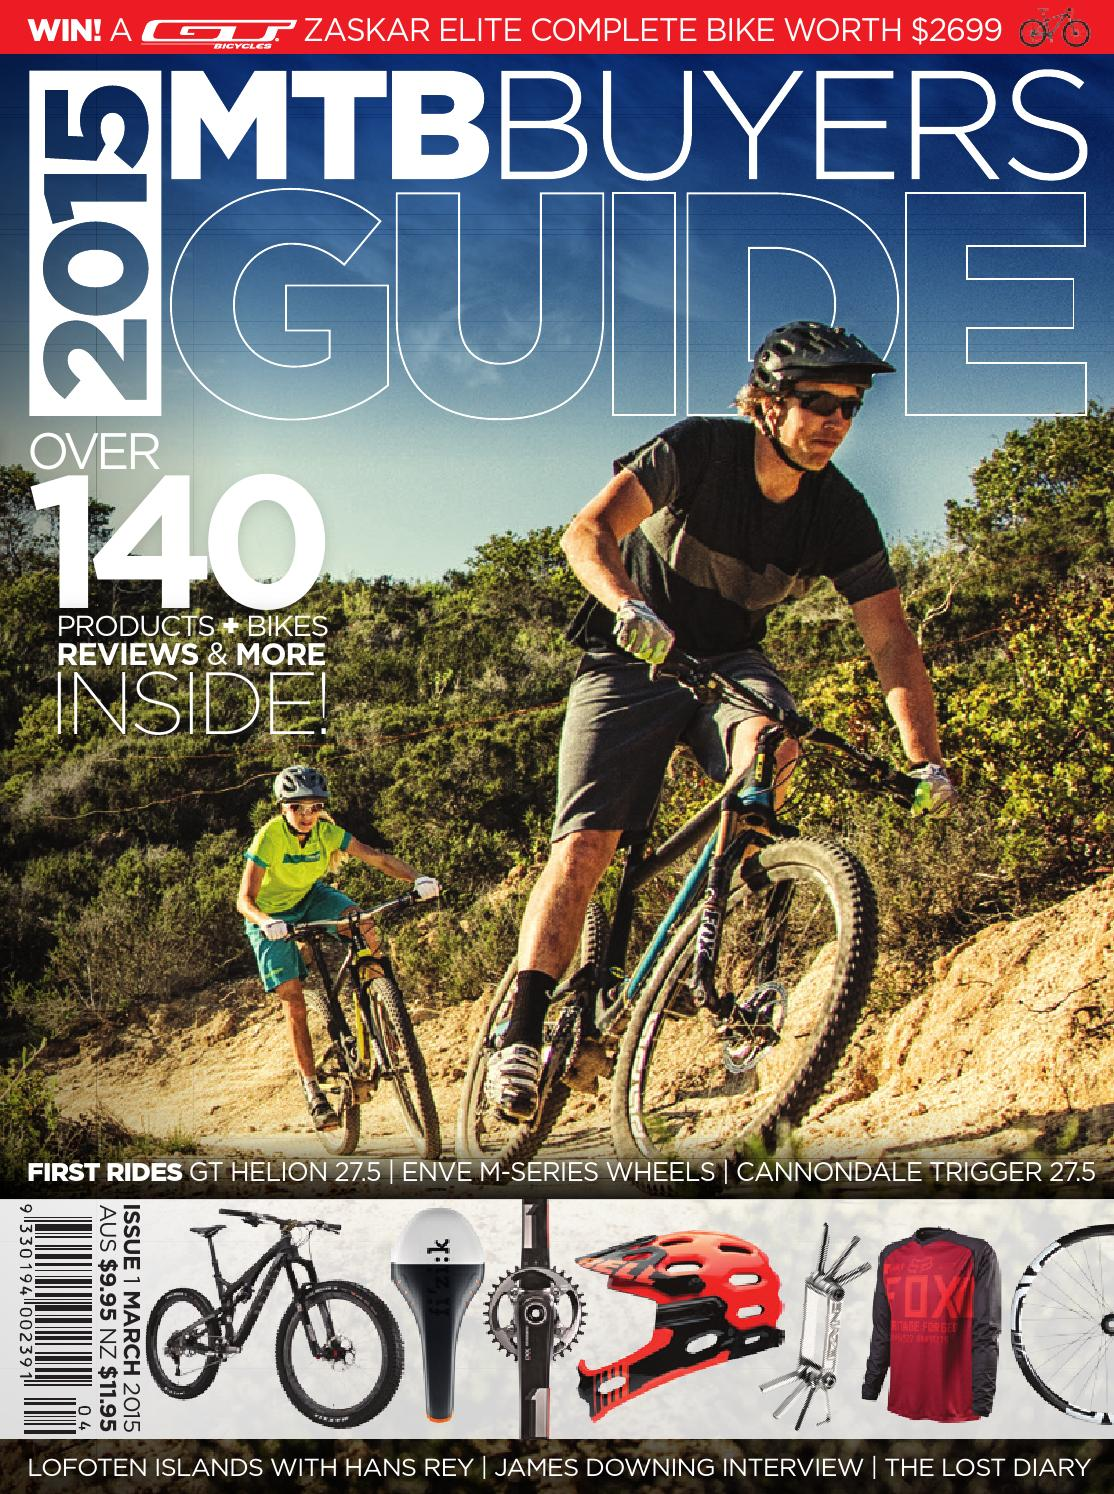 47d1ec046 Monza Imports MTB Buyers Guide 2015 by Monza Imports - issuu